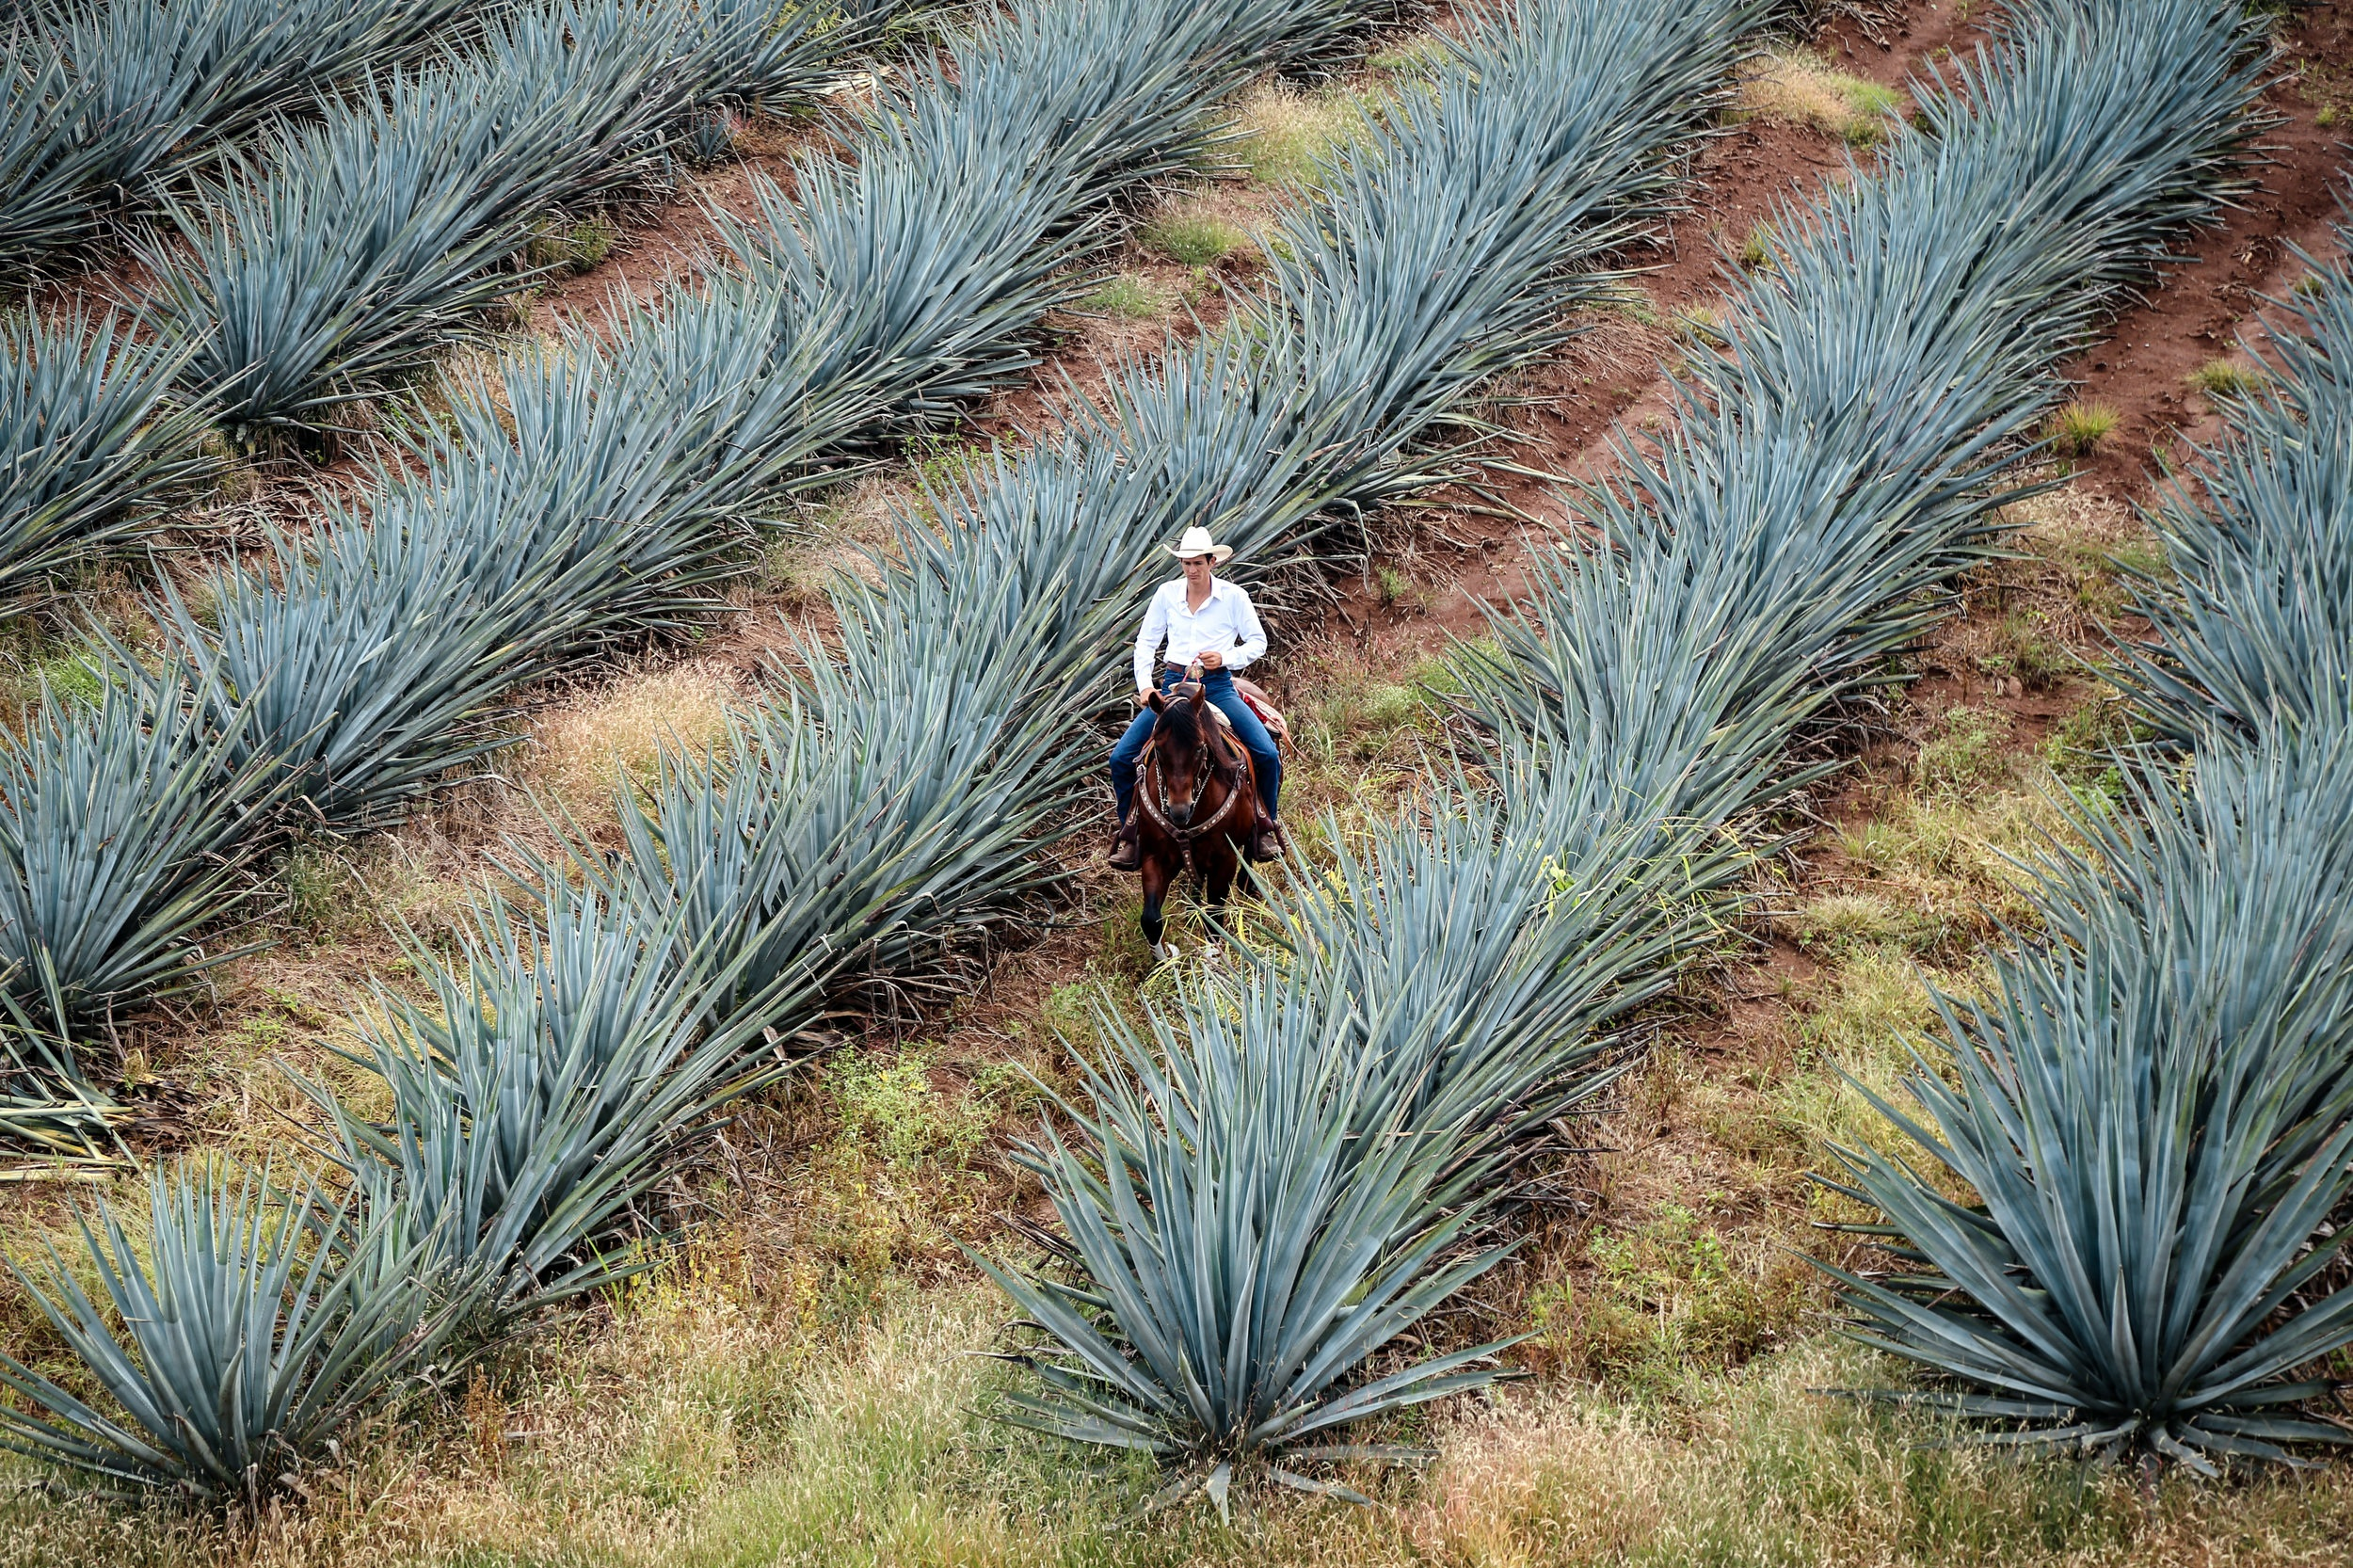 TEQUILA & MEZCAL TASTING - explore the differences between tequilas & mezcalstarting at $35 per person